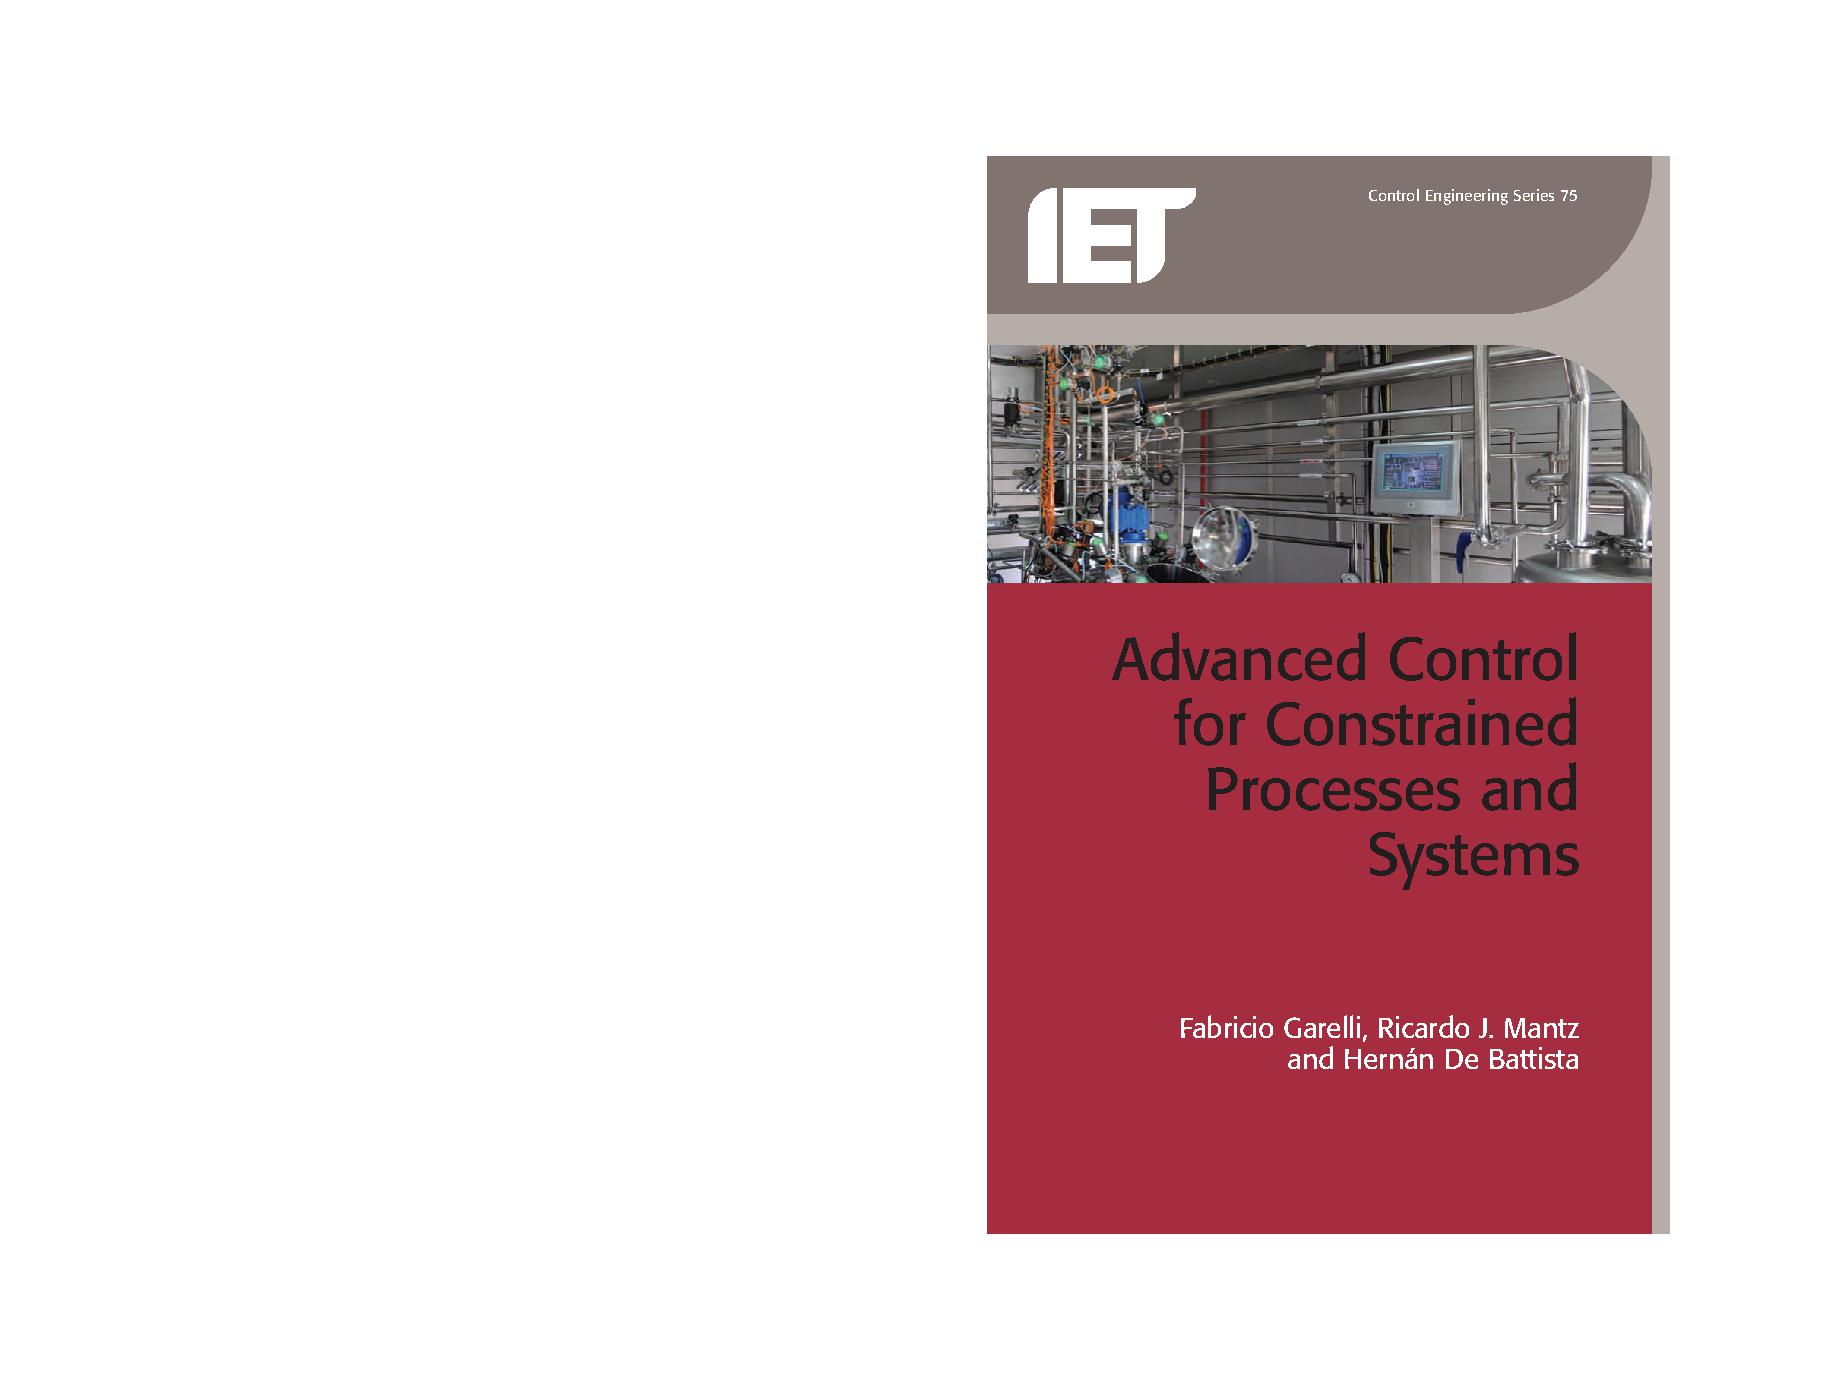 Advanced Control for Constrained Processes and Systems: A Unified and Practical Approach